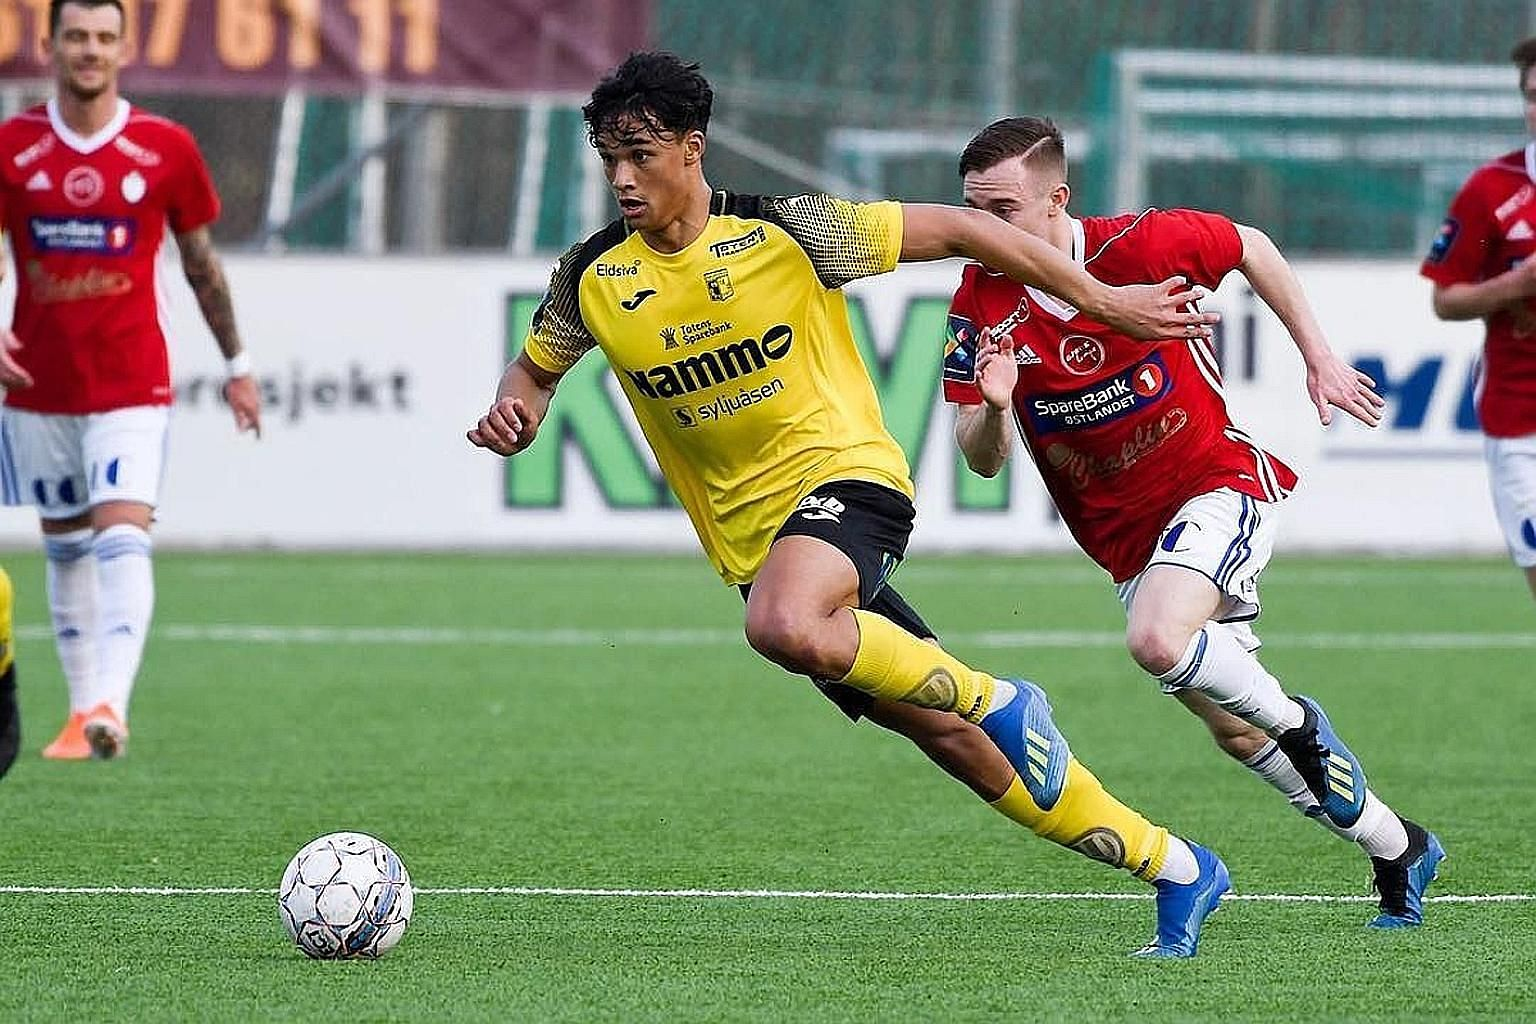 Left: Ikhsan Fandi has scored two goals in seven substitute appearances for Raufoss since his signing in January. Below: Ikhsan helps out although flatmate Parfait Bizoza, a defender, does most of the cooking at home.